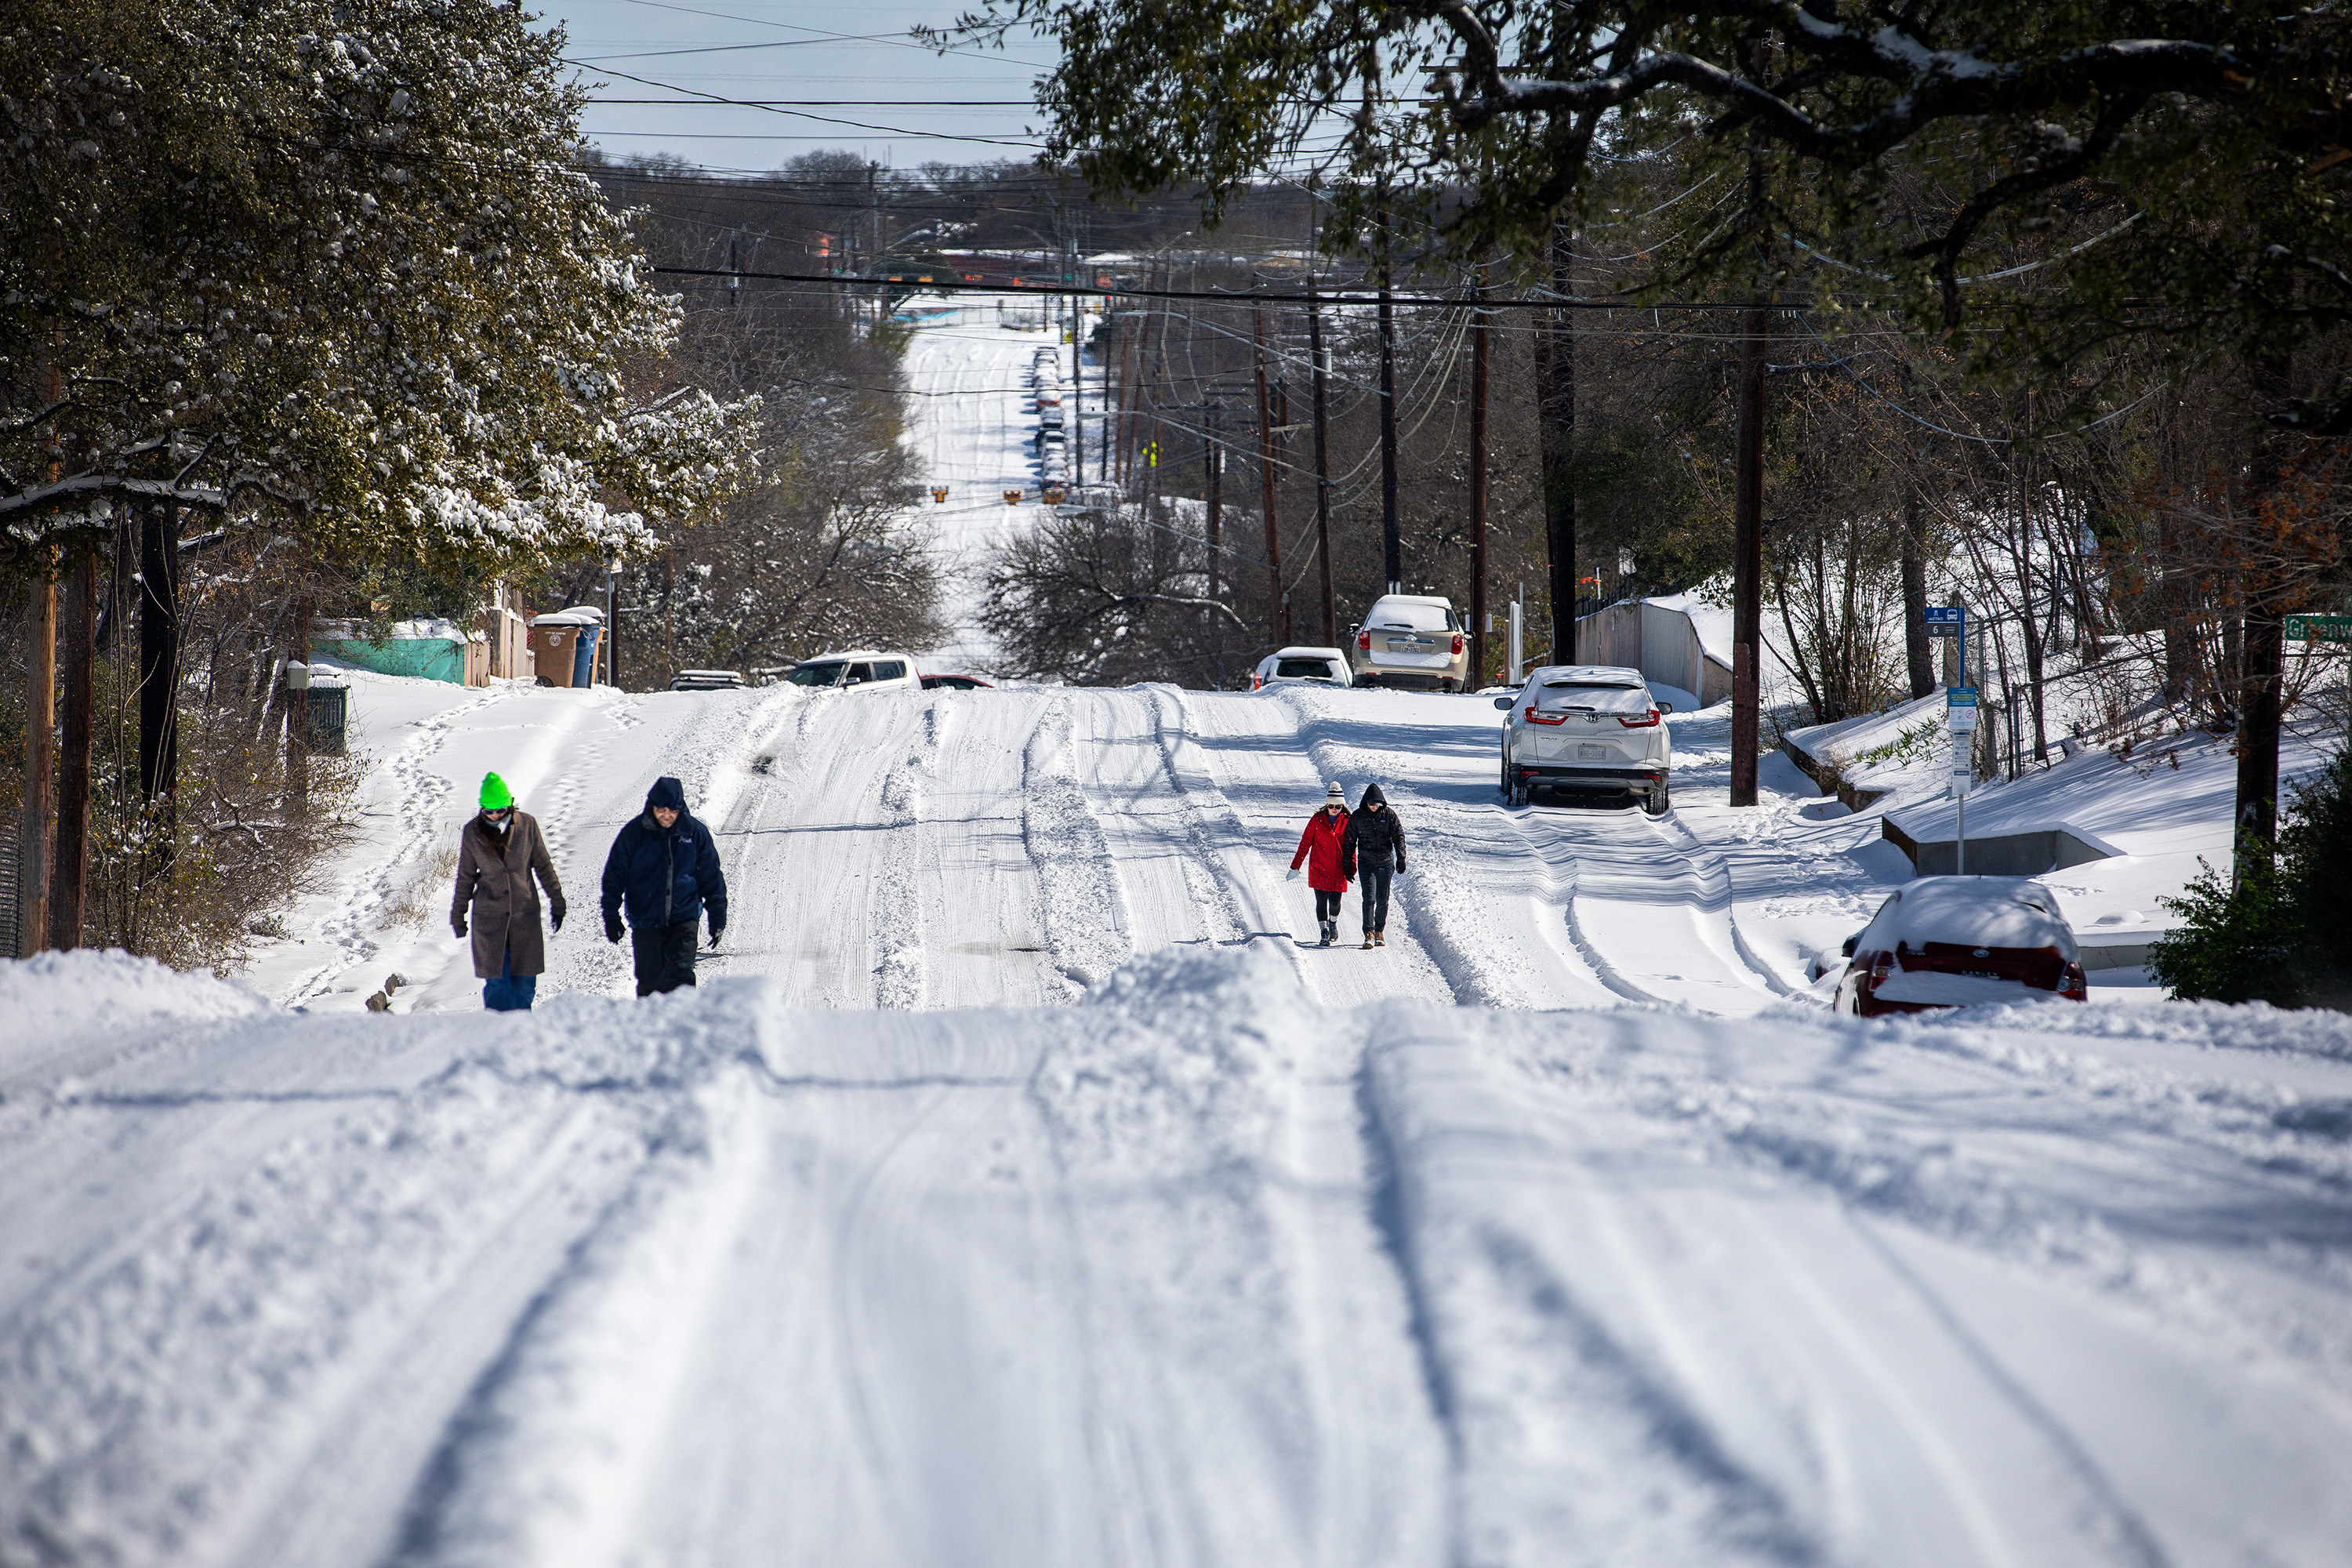 Two pairs of people walking down extremely snowy roads in Texas